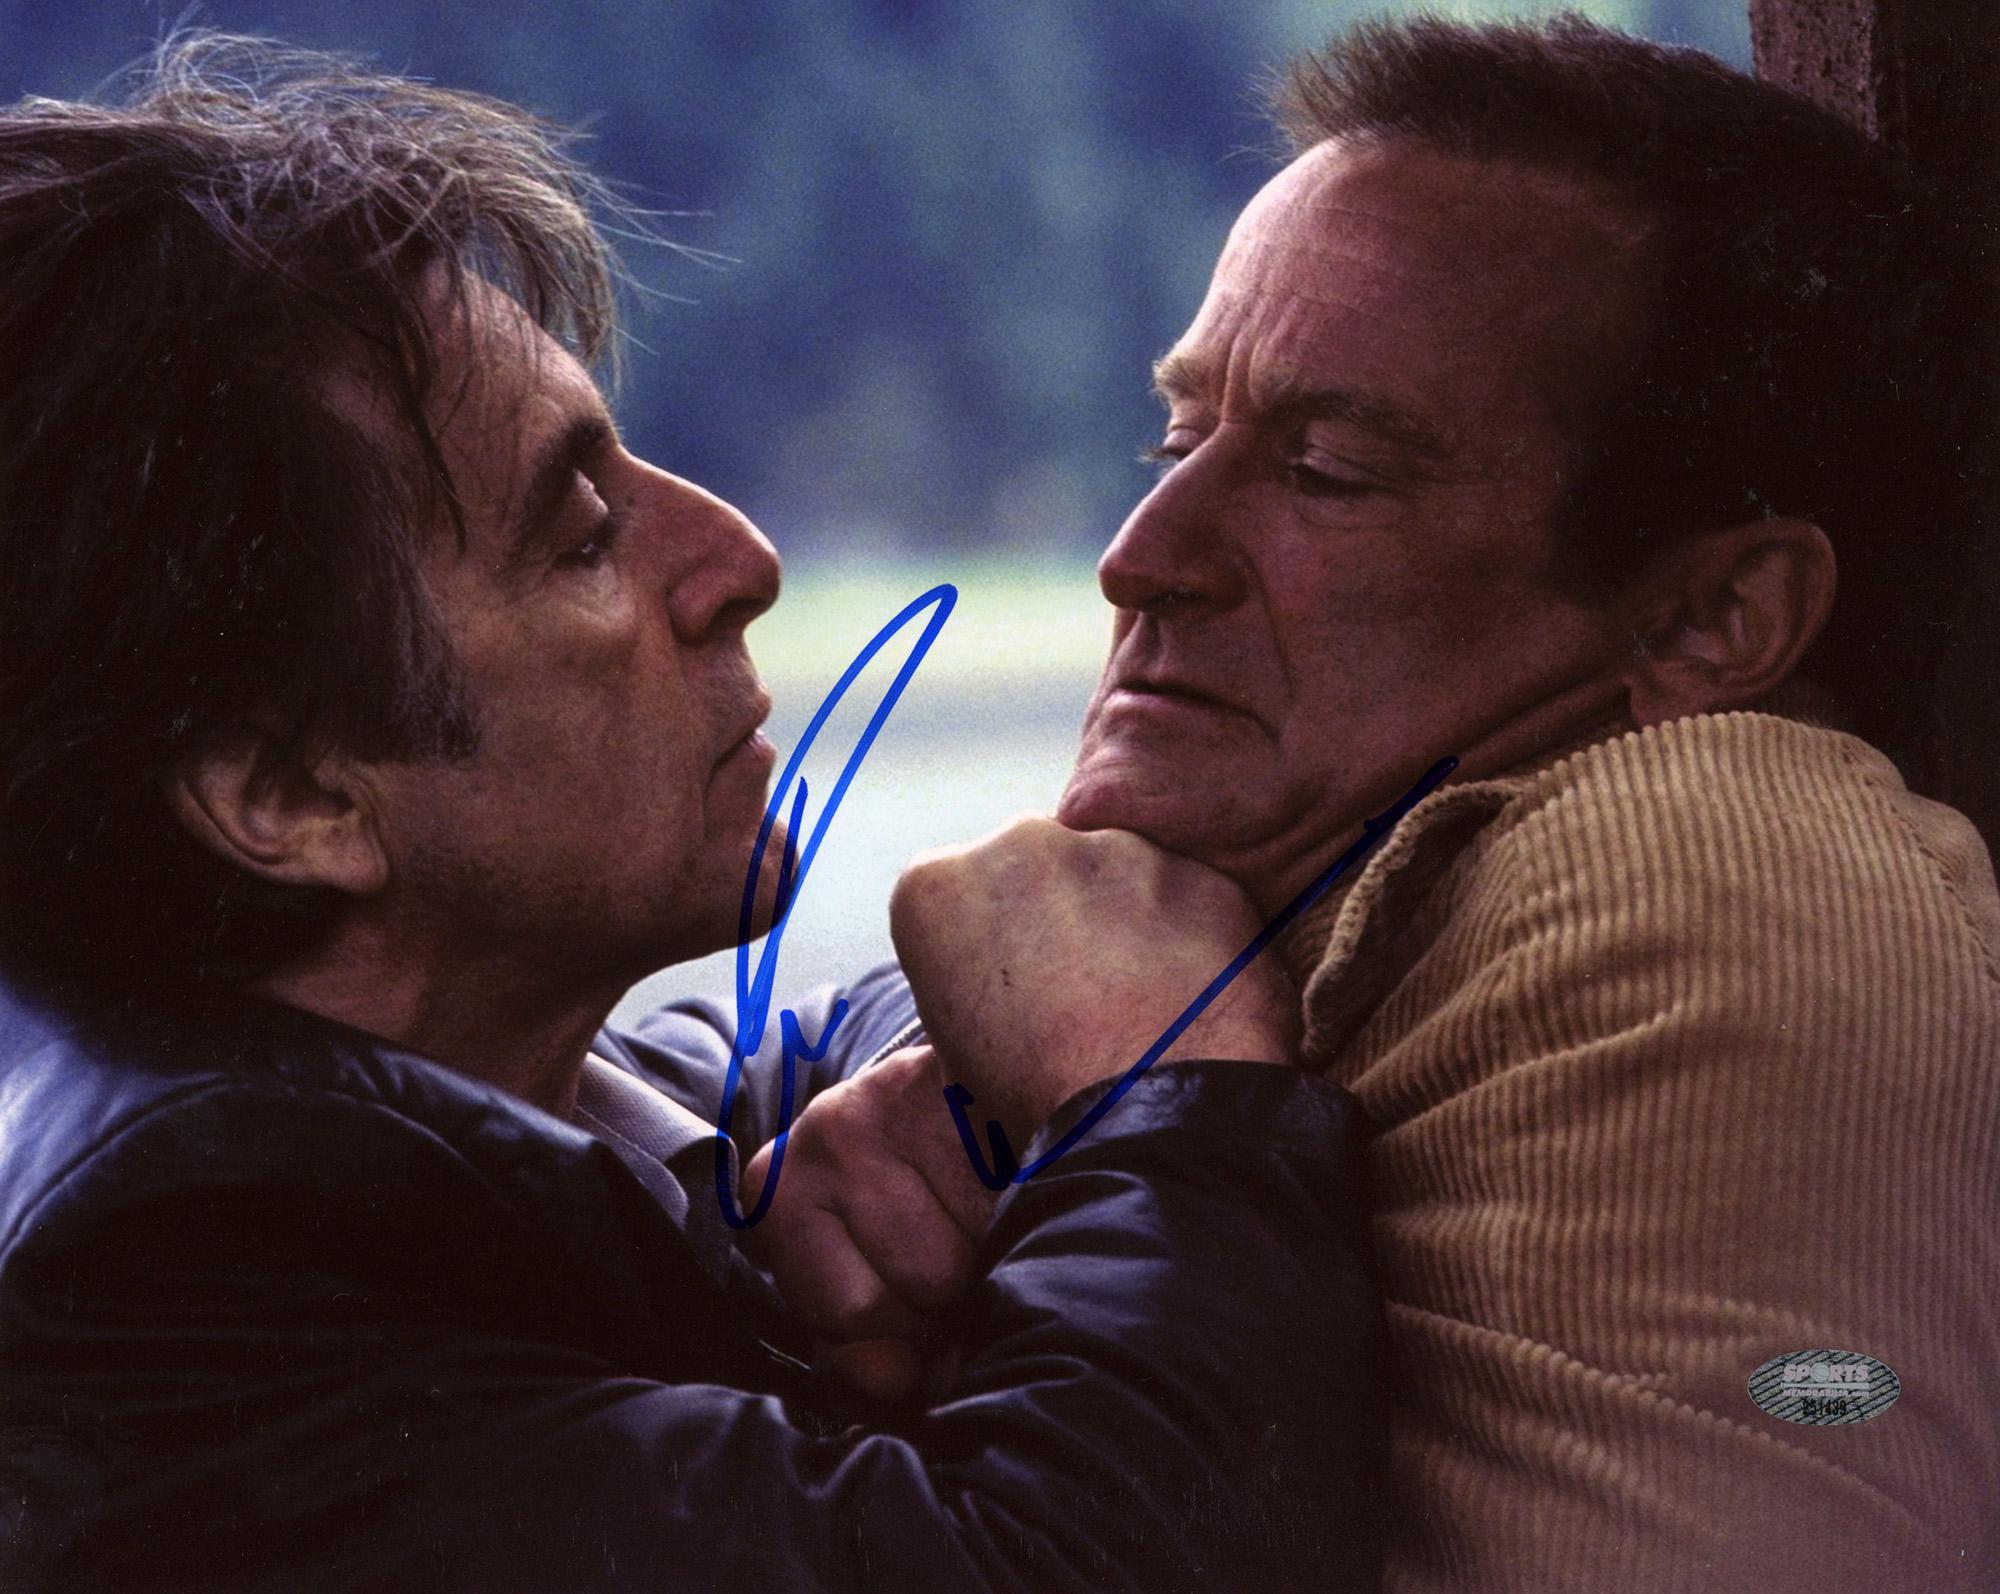 Robin Williams Autographed Insomnia 8x10 Photo - SM HOLO